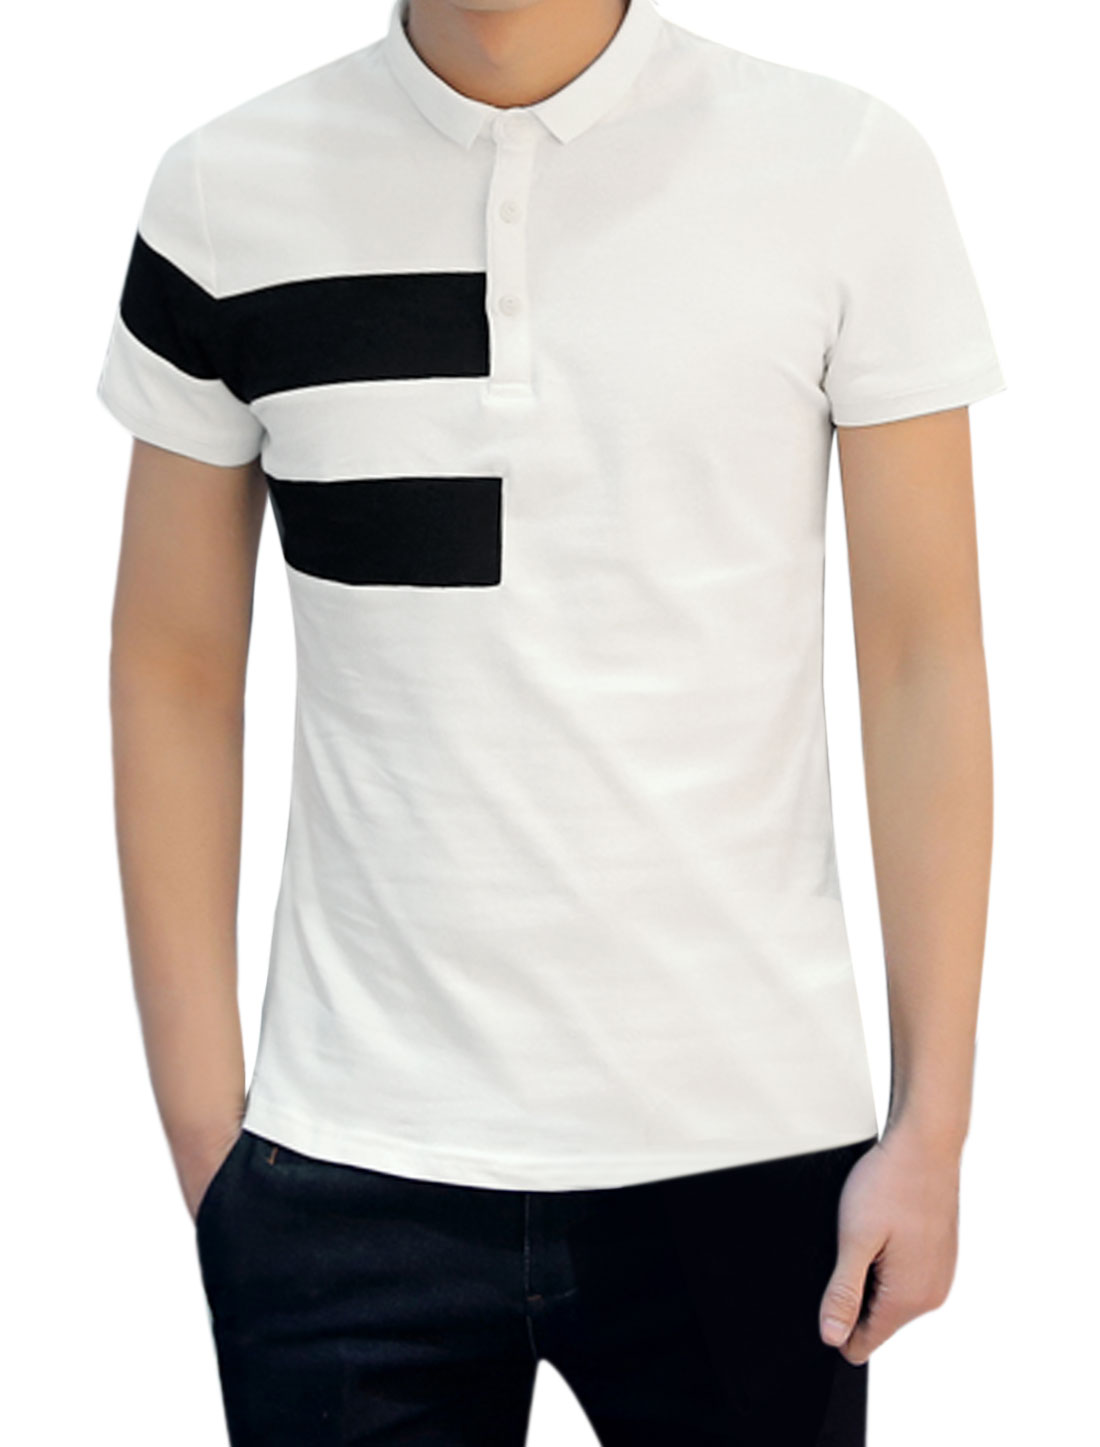 Men Short Sleeves Contrast Color Slim Fit Polo Shirt White M